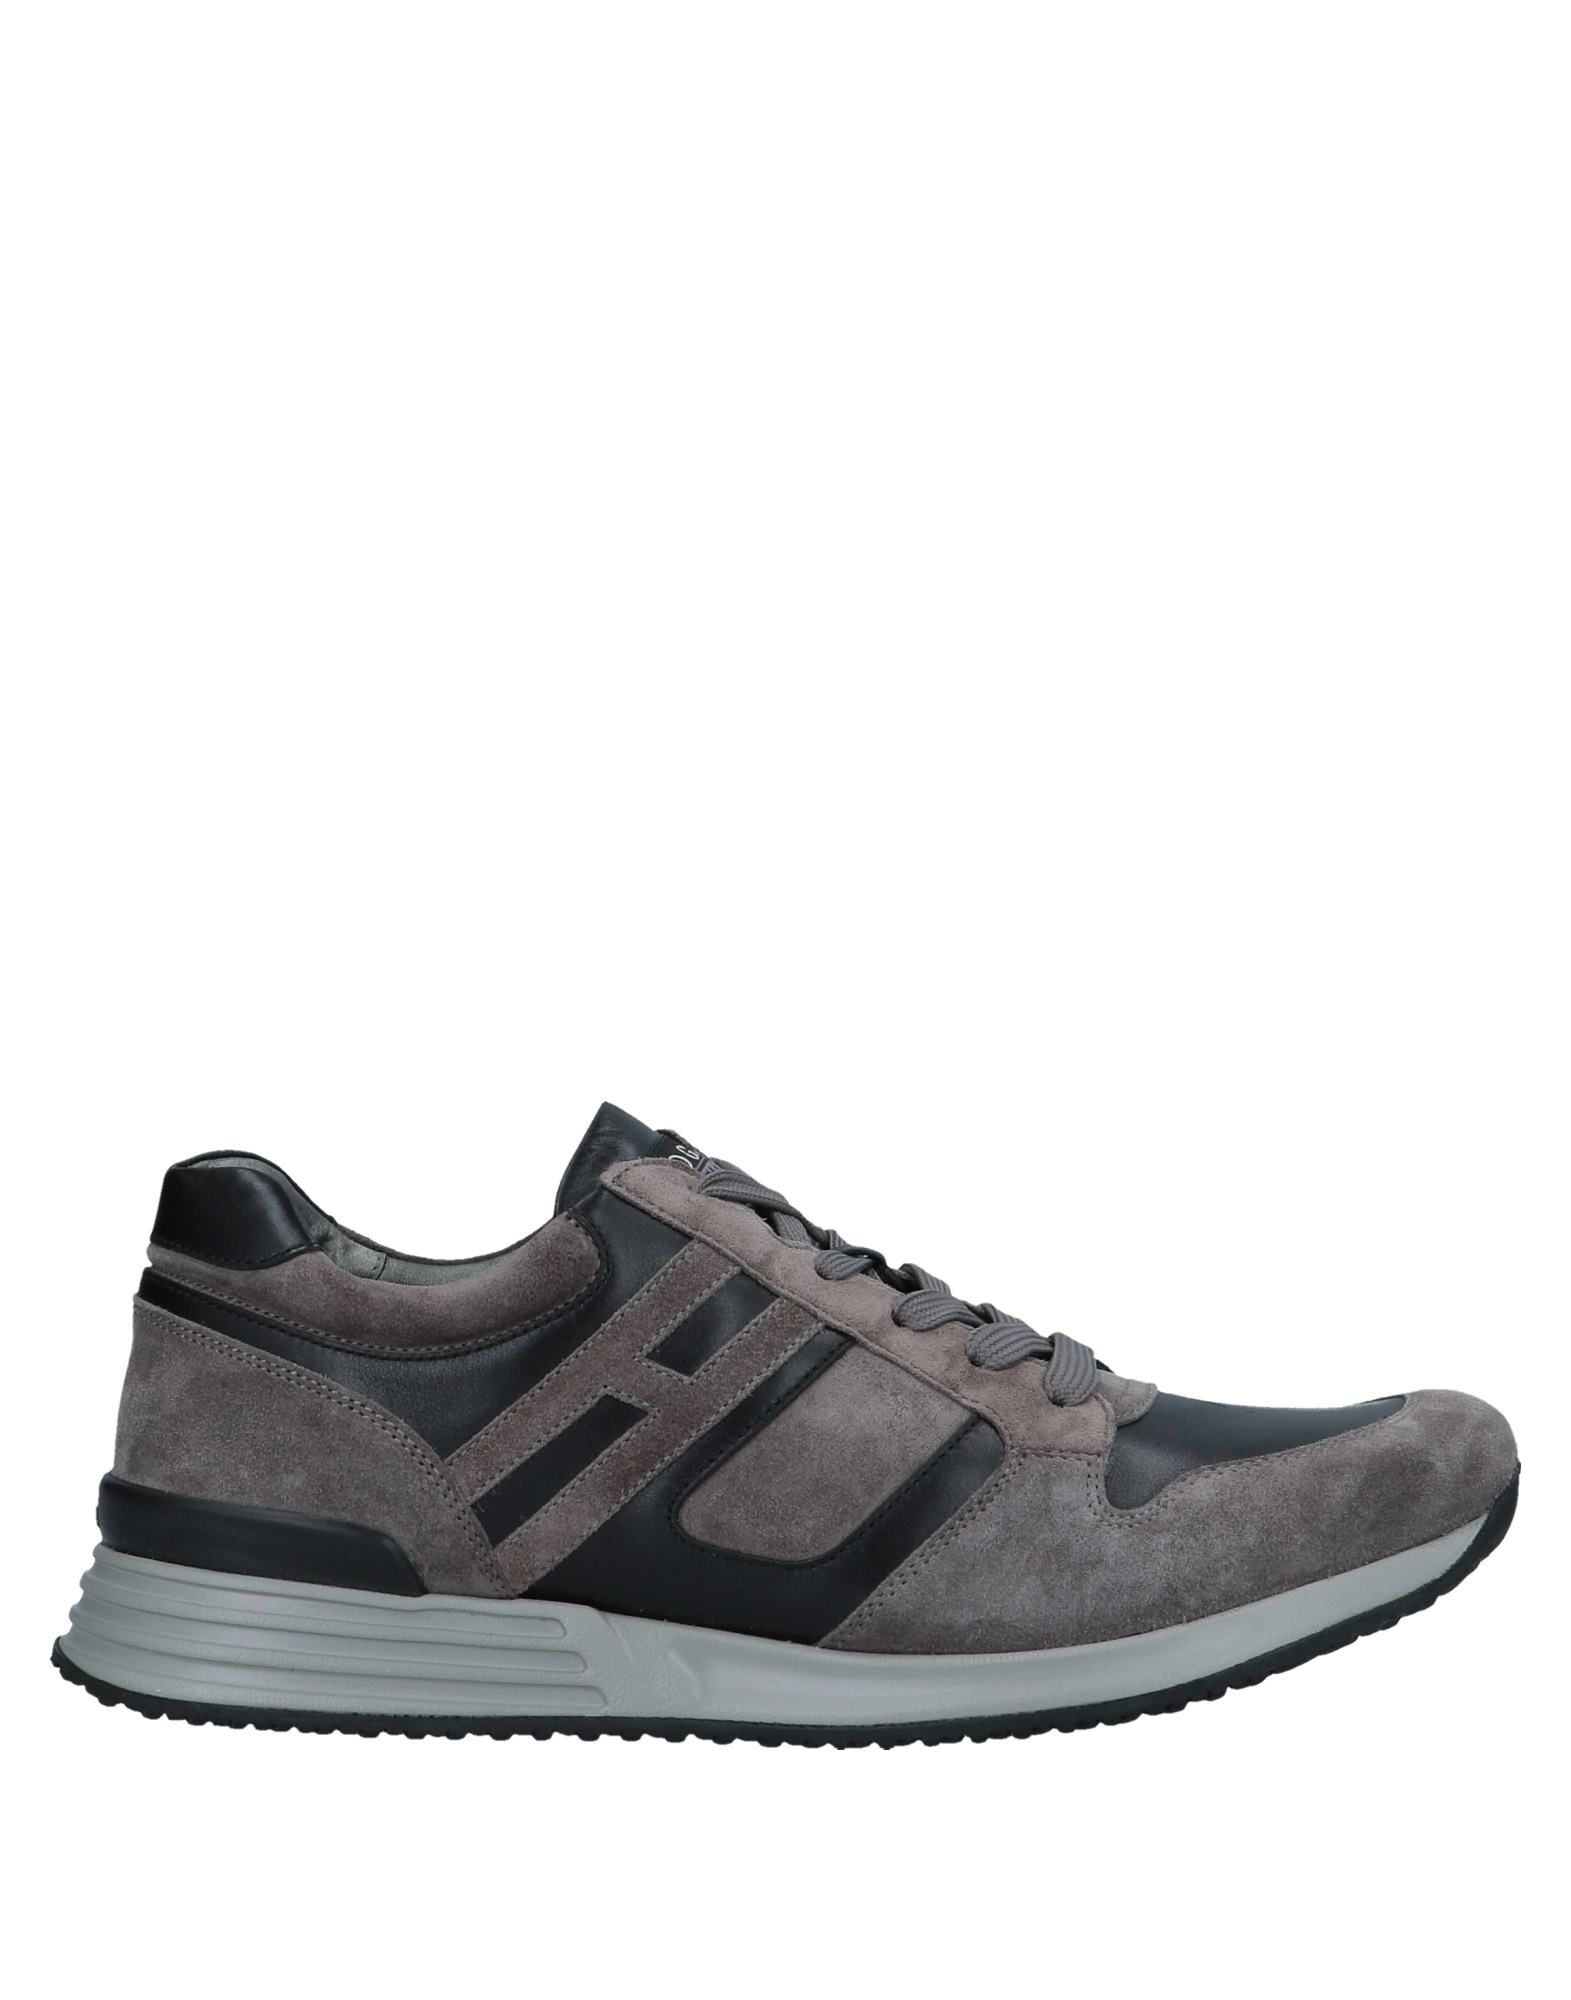 Sneakers Hogan Rebel Homme - Sneakers Hogan Rebel  Gris Super rabais